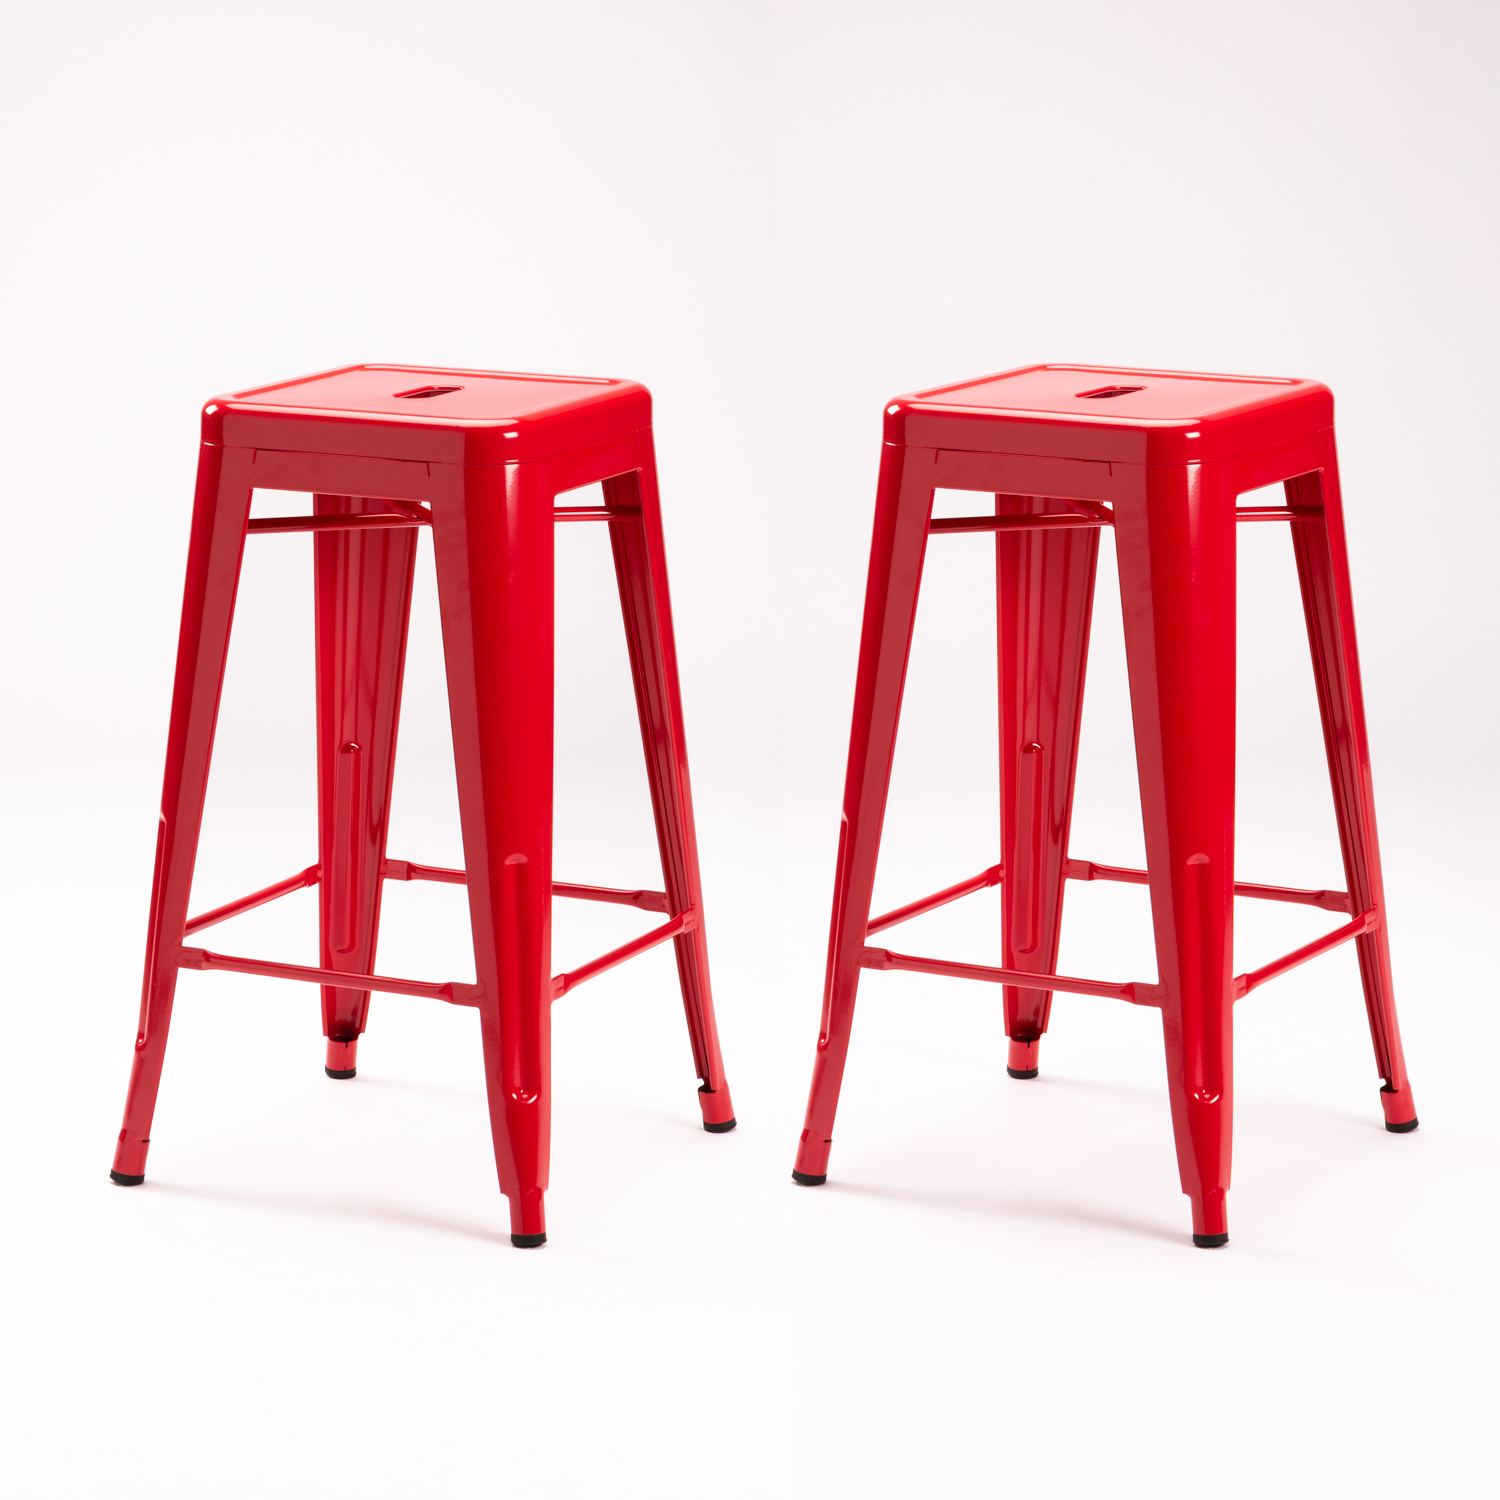 SET OF 2 TOLIX KITCHEN STOOLS